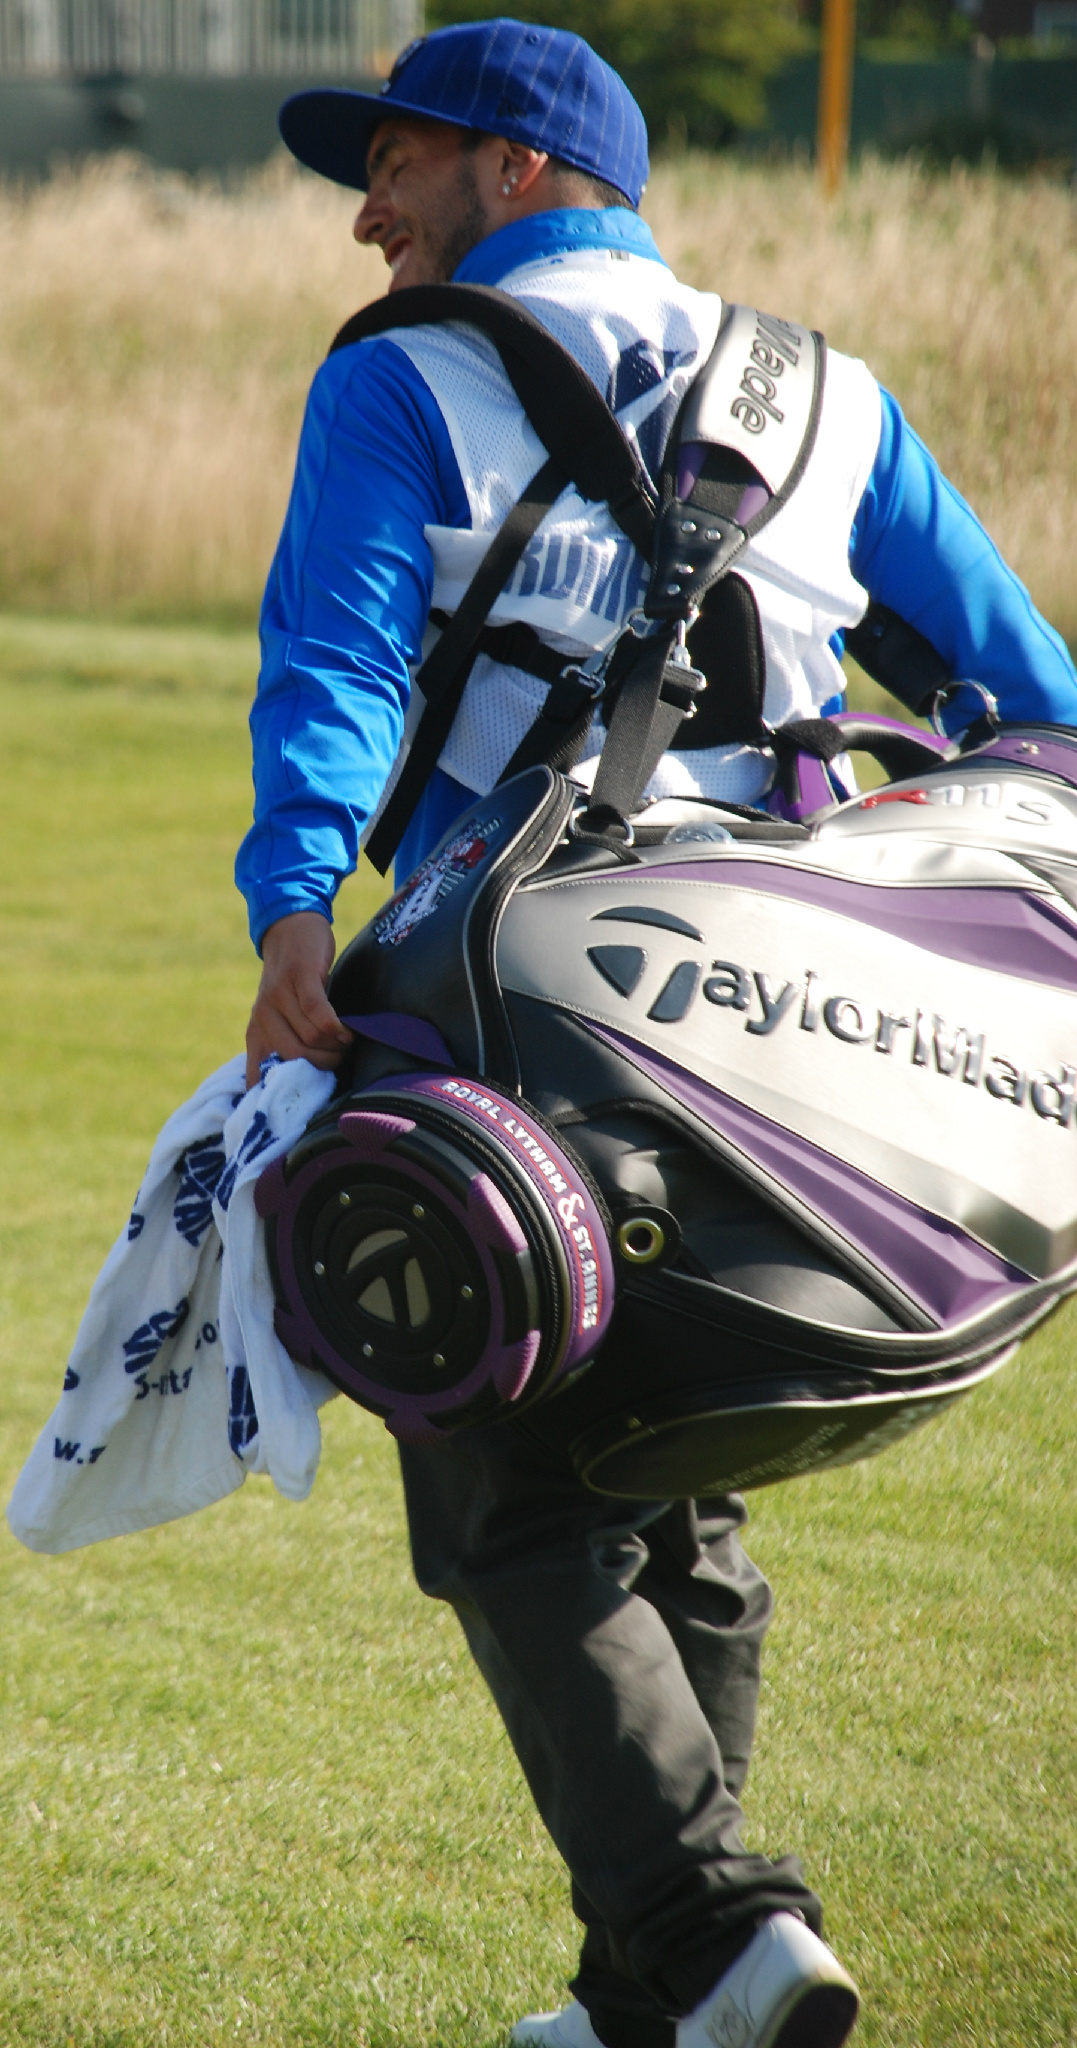 信じられない!RT @The_Open: The rumours are true!  Carlos Tevez is caddying for Andres Romero. #TheOpen http://t.co/6AIuyt0f